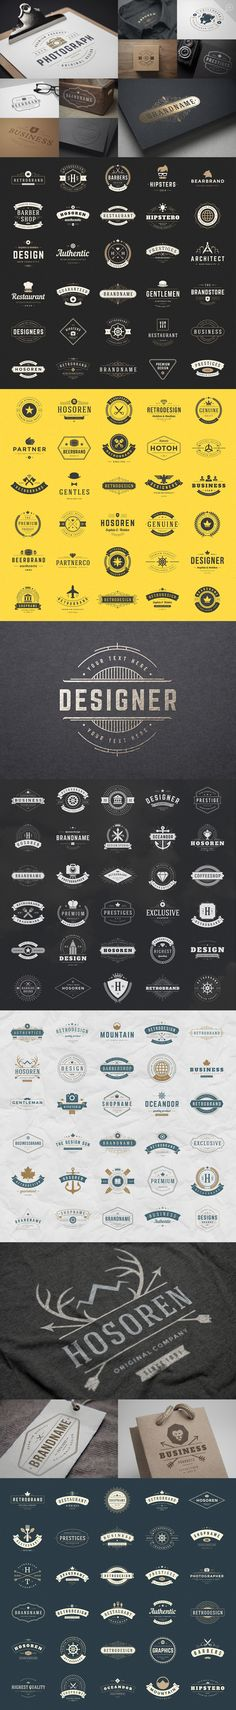 700 logos and badges bundle by Vasya Kobelev on Creative Market